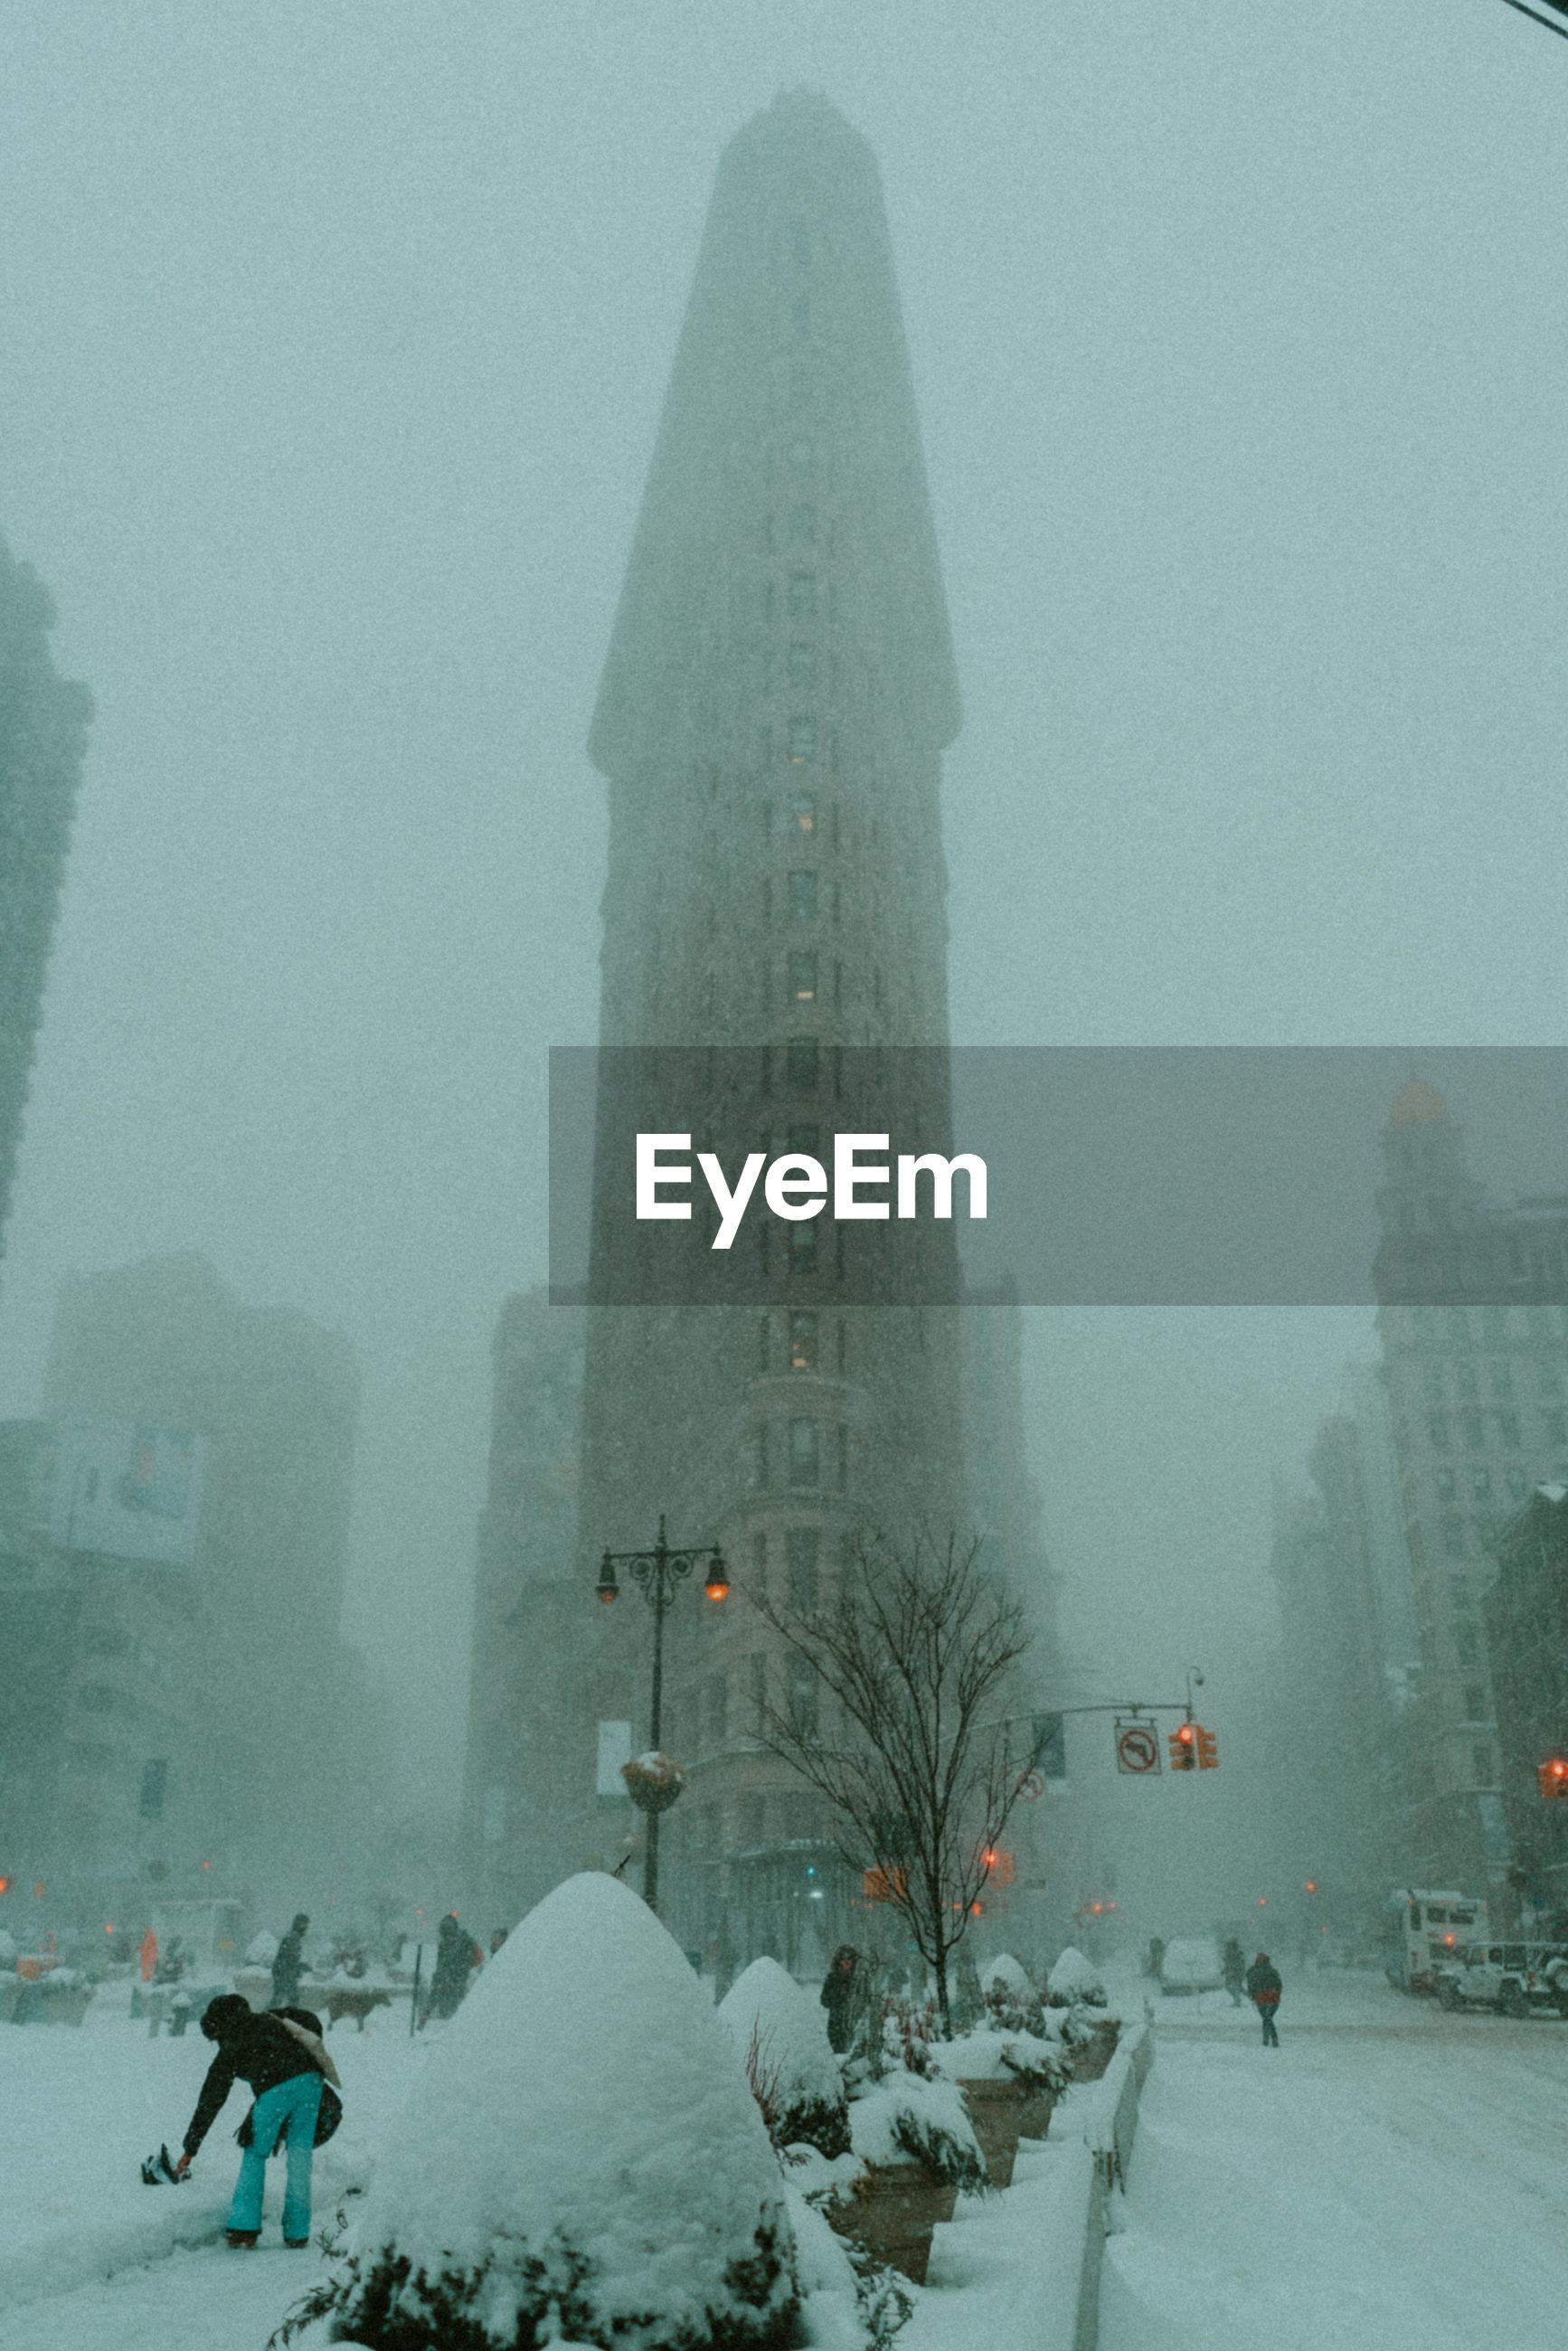 WOMAN ON SNOW COVERED CITY IN FOGGY WEATHER